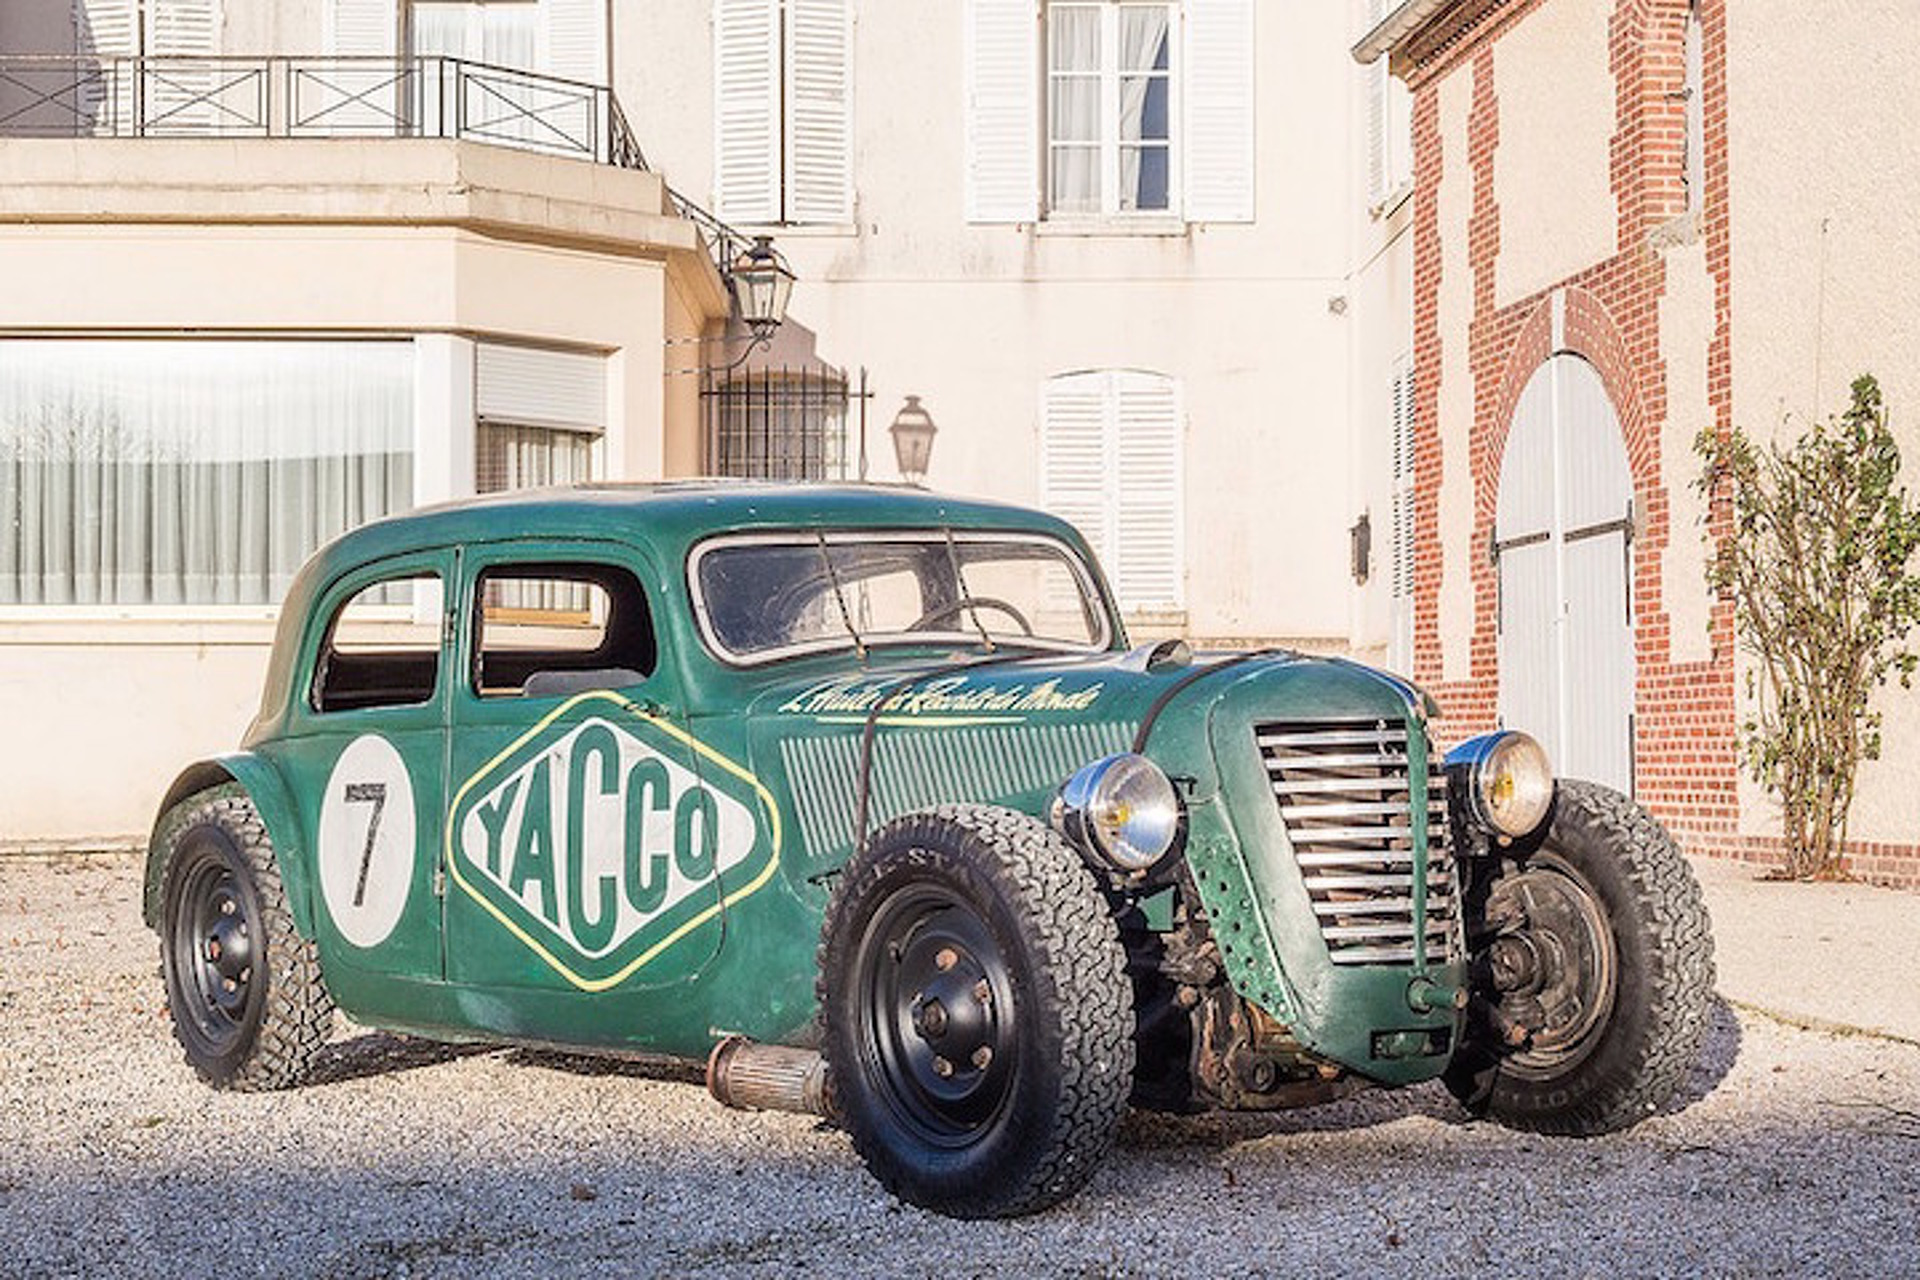 Buy This Beautiful Citroen Race Car, Be the Coolest Guy at the Dirt ...